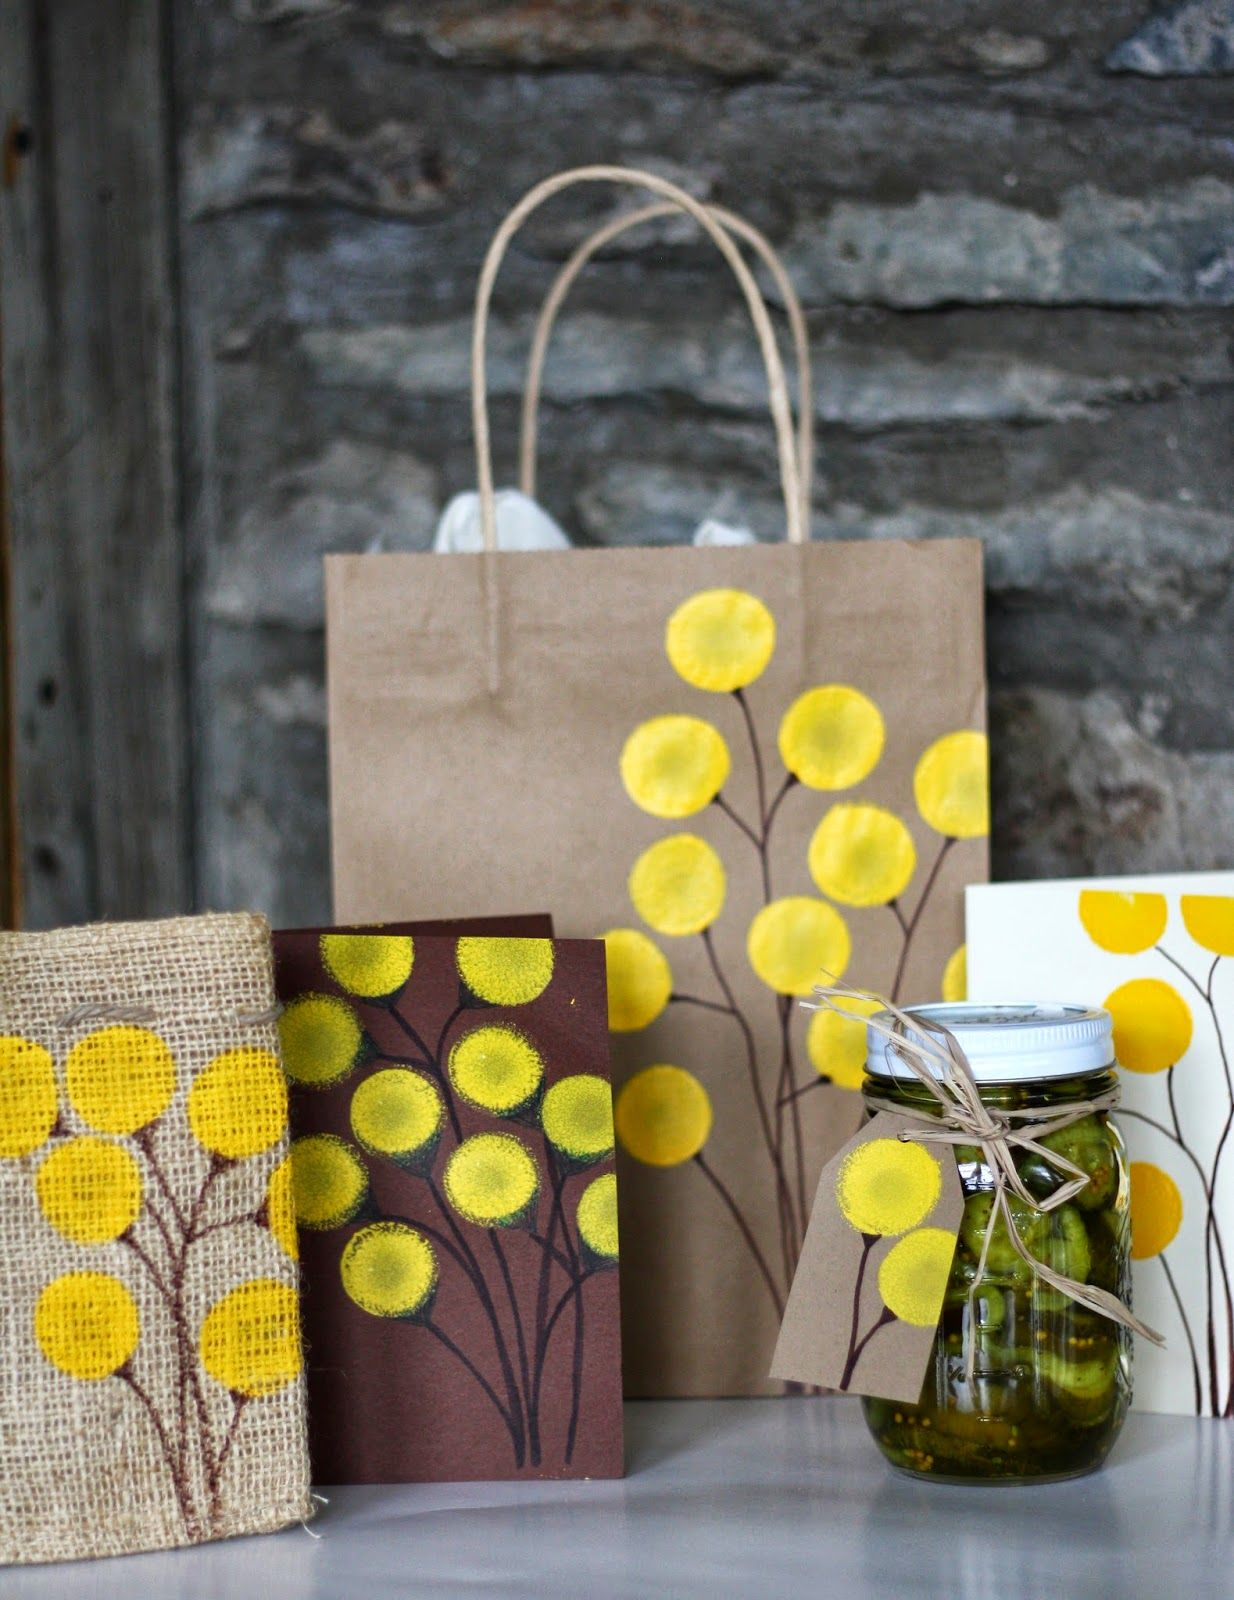 Diy Painted Billy Ball Flowers Gift Wrap The Semi Frugal Life